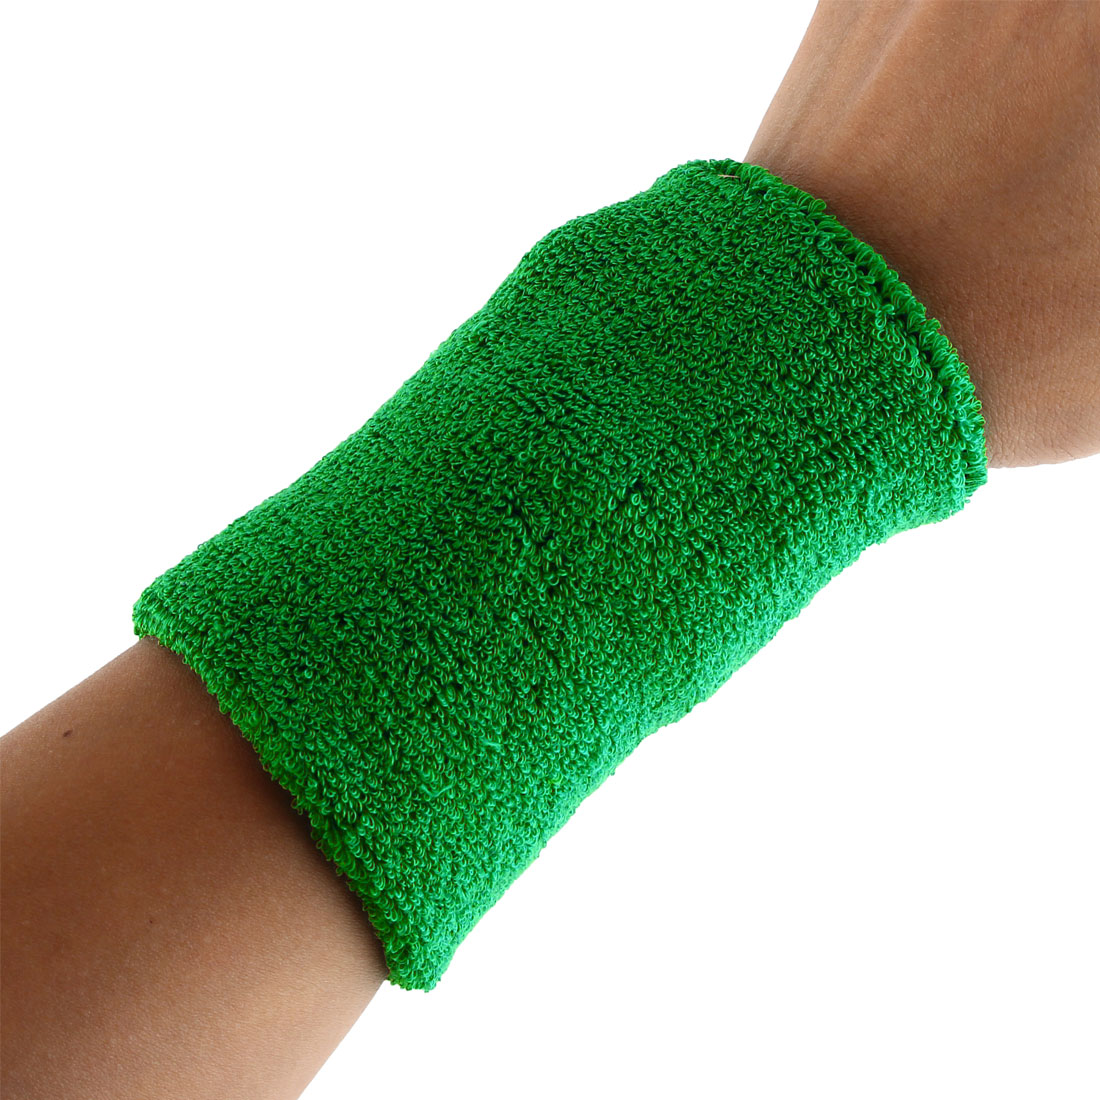 Exercises Football Gym Elastic Strap Hand Protector Sweatband Sport Wrist Green 2pcs